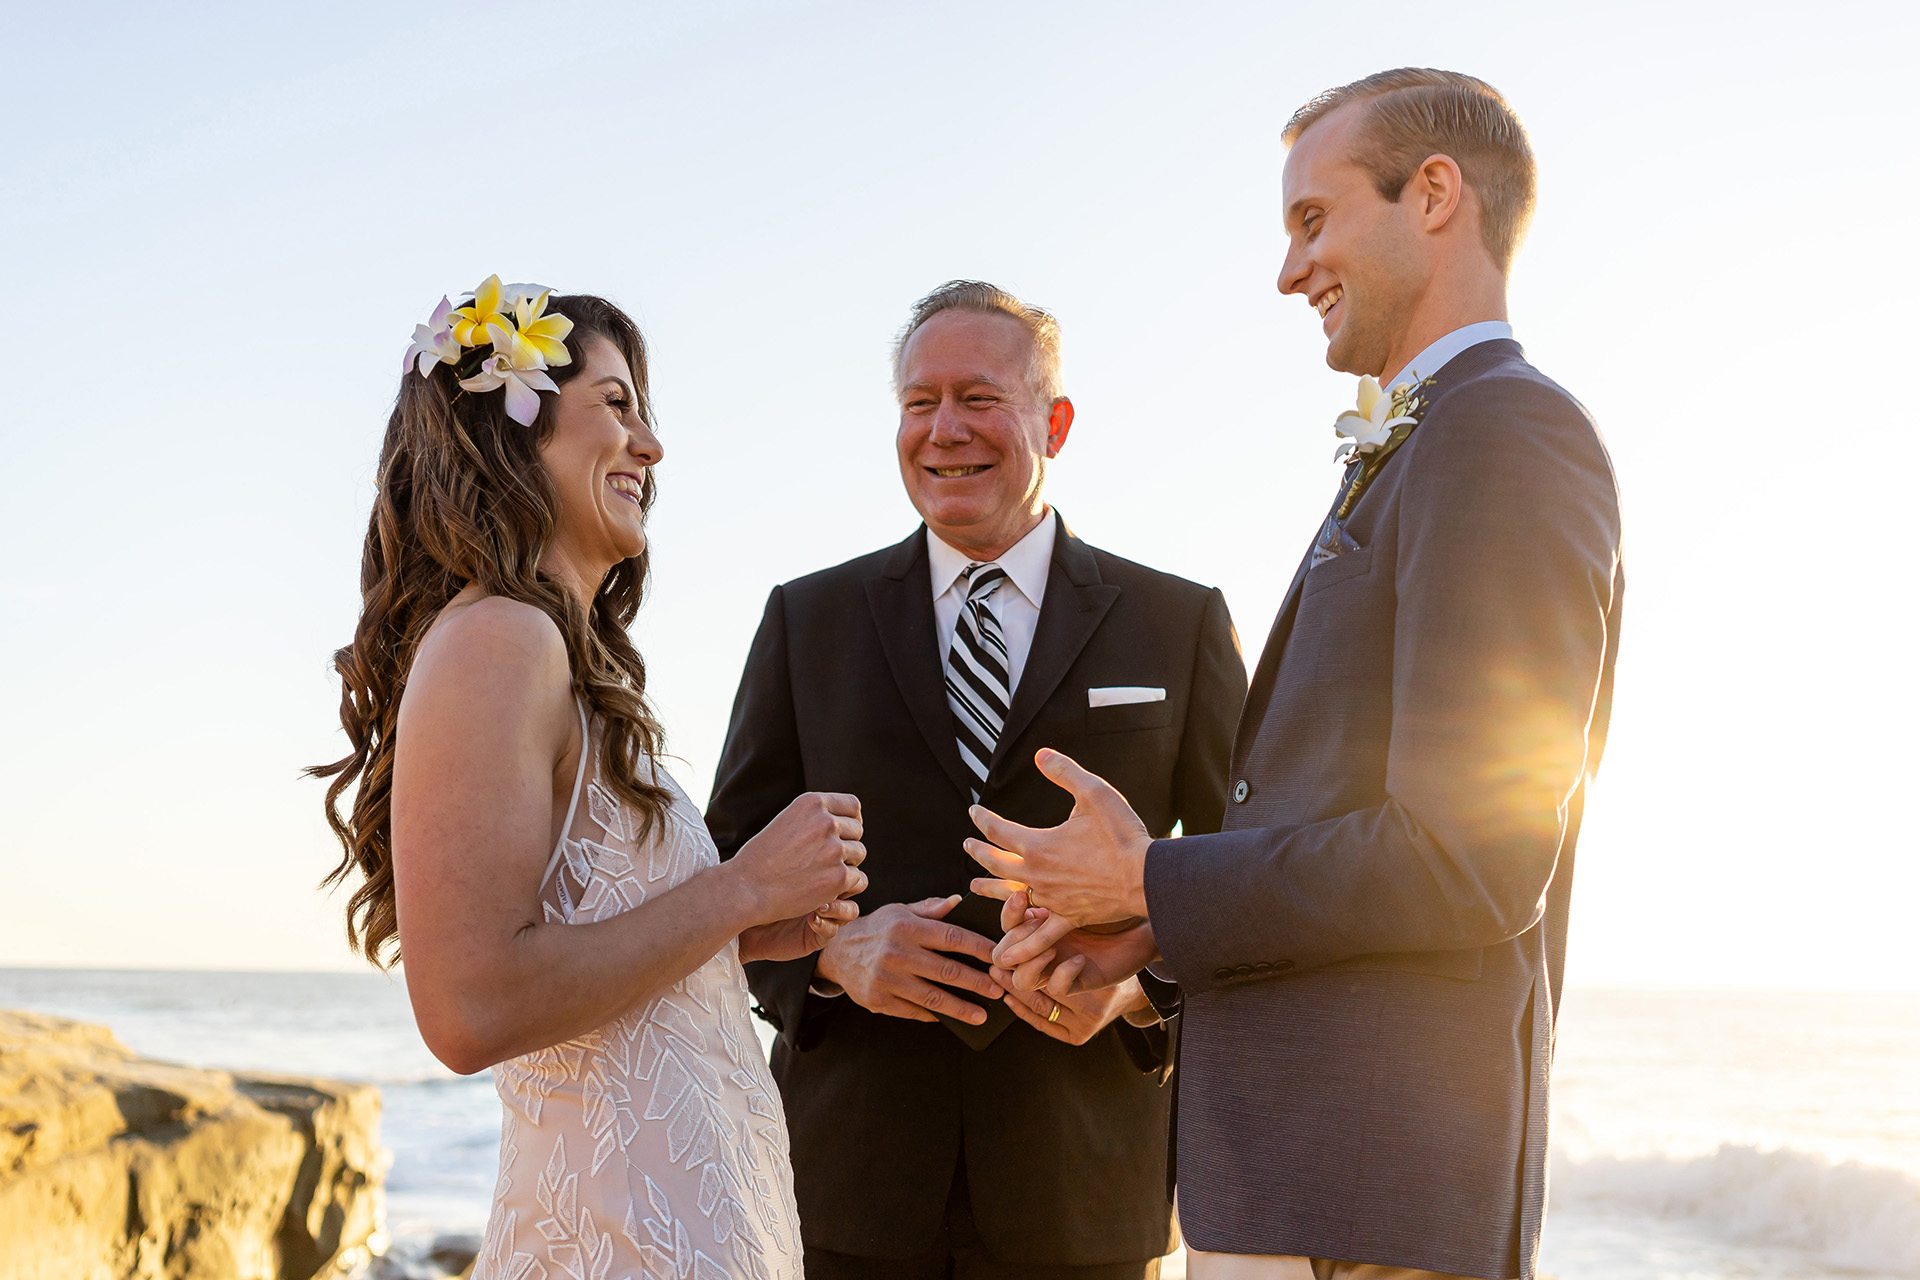 Shaun Baker, of California, is a wedding photographer for -